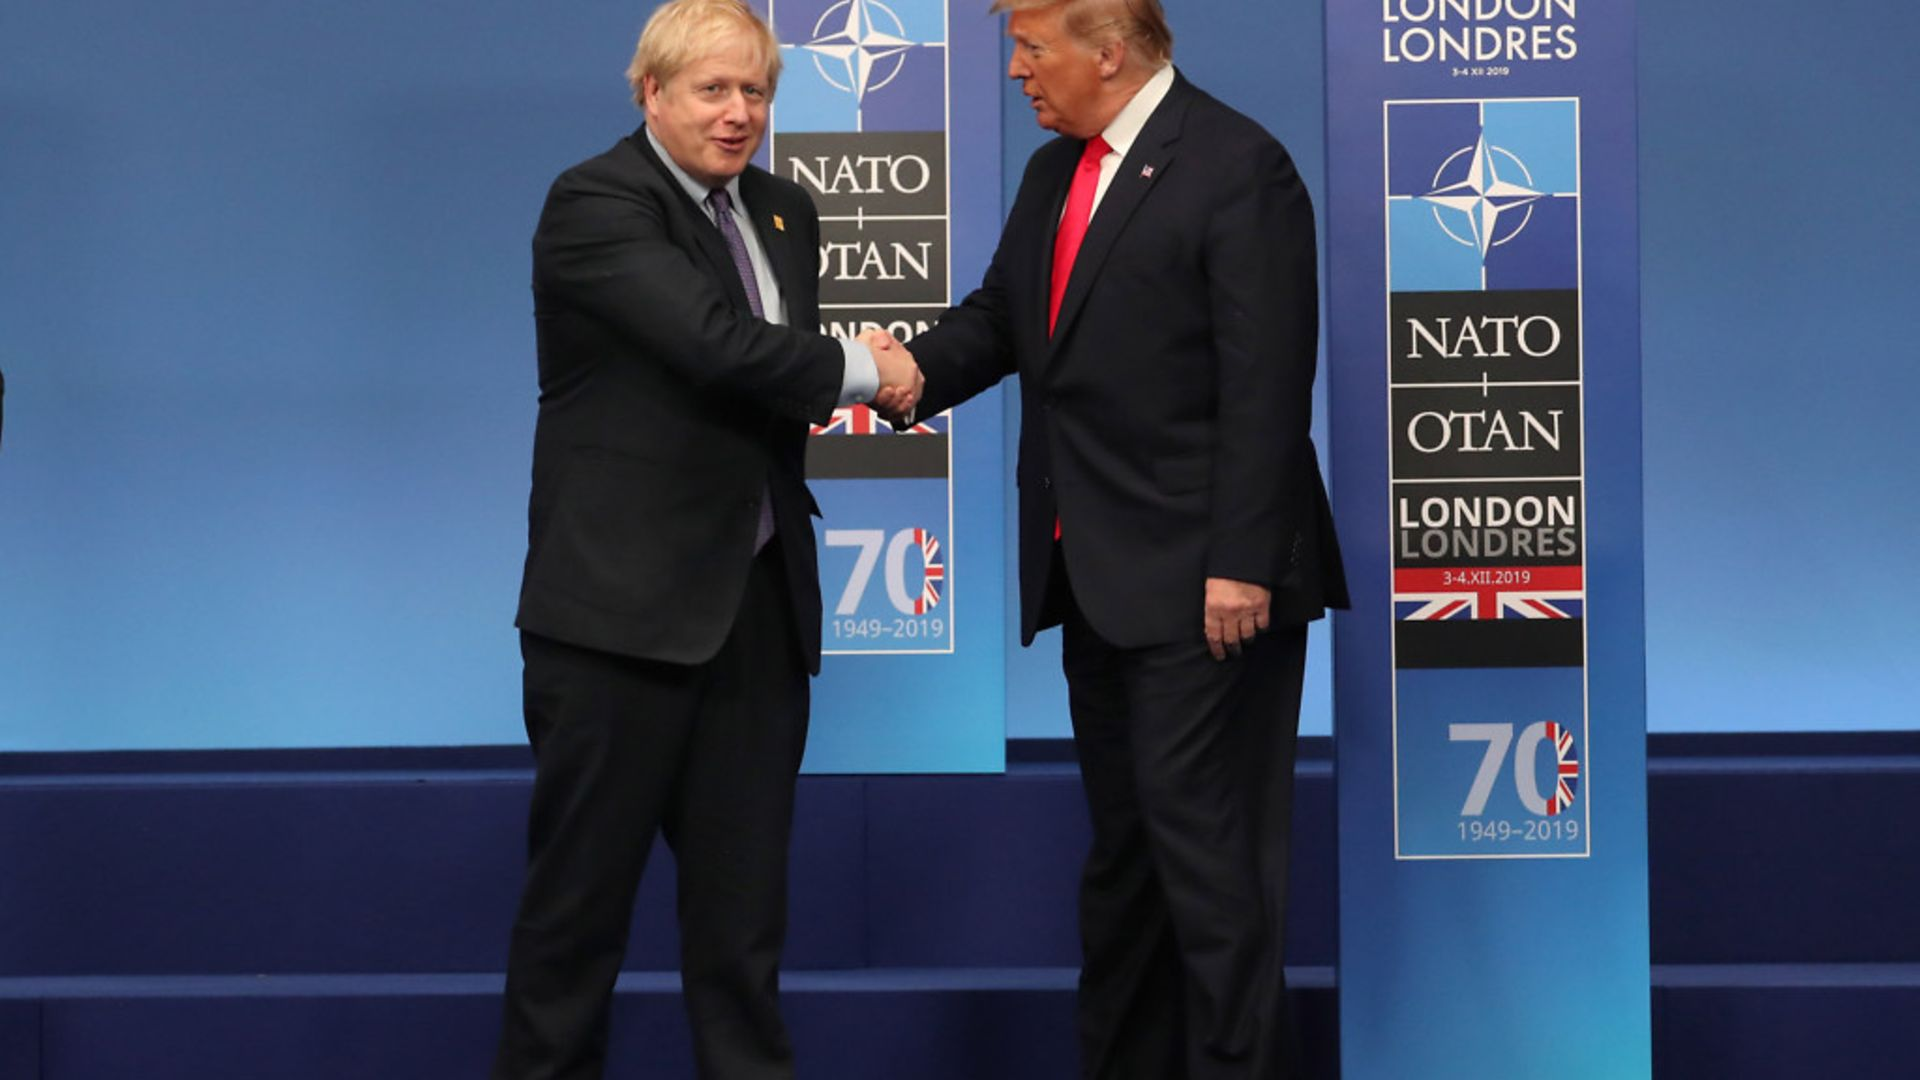 Prime Minister Boris Johnson and US President Donald Trump during the annual Nato heads of government summit - Credit: PA Wire/PA Images